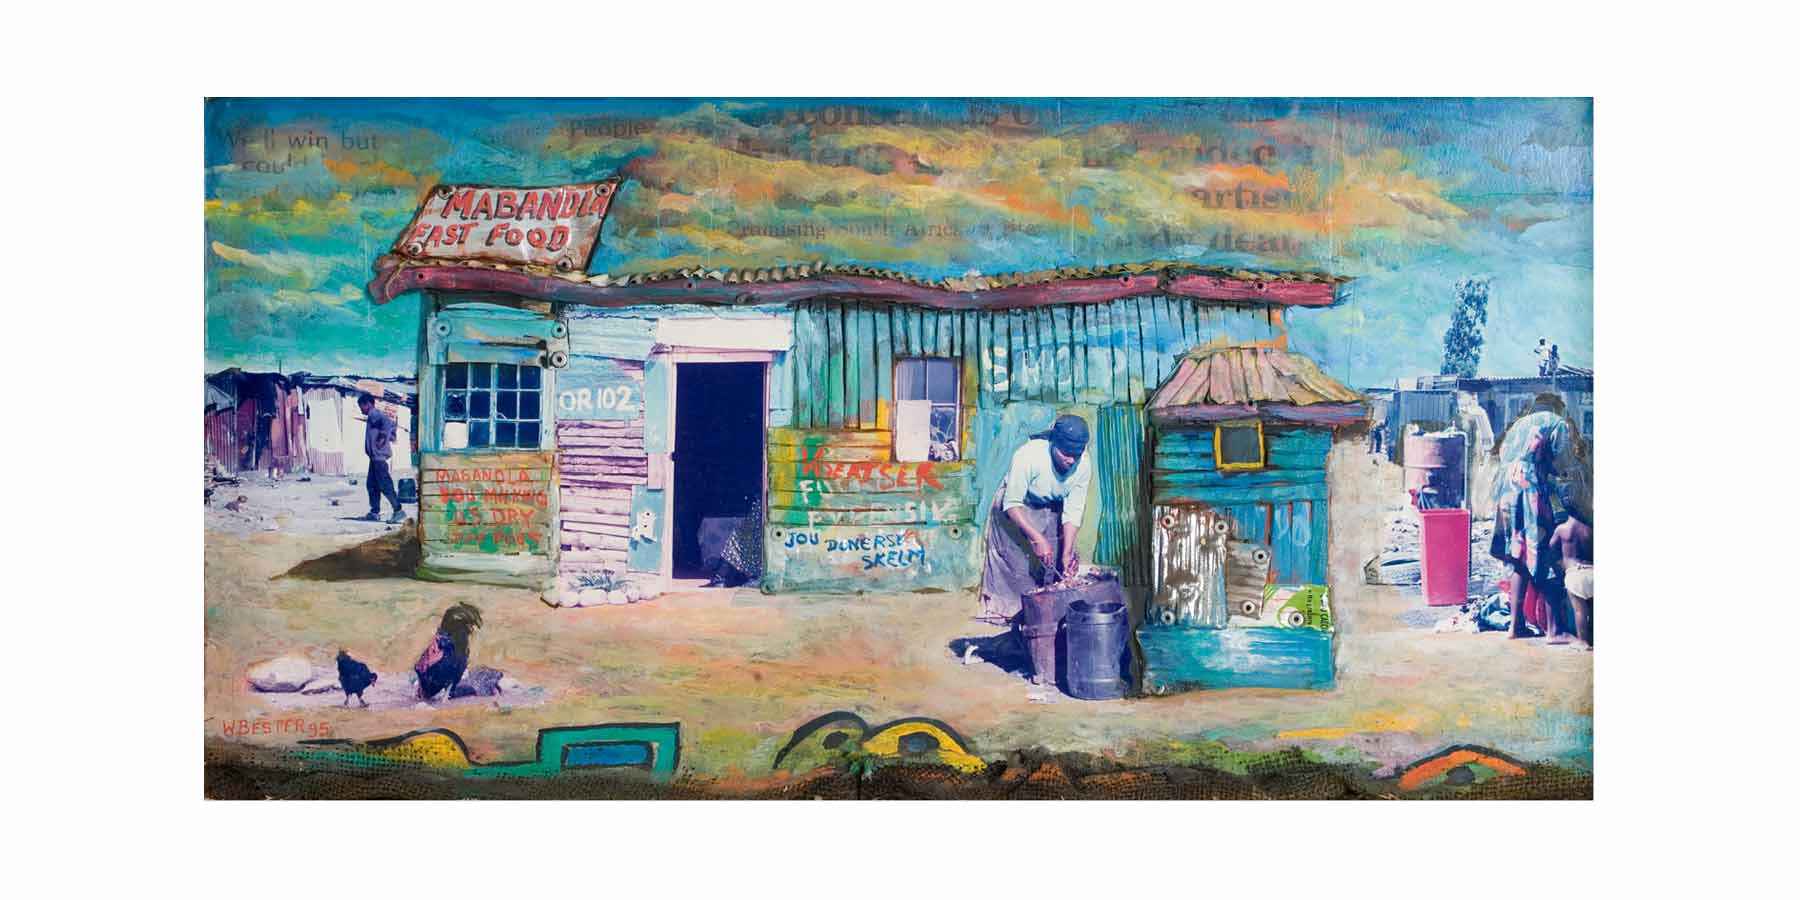 Willie Bester Township Shack Art works Collage 1995